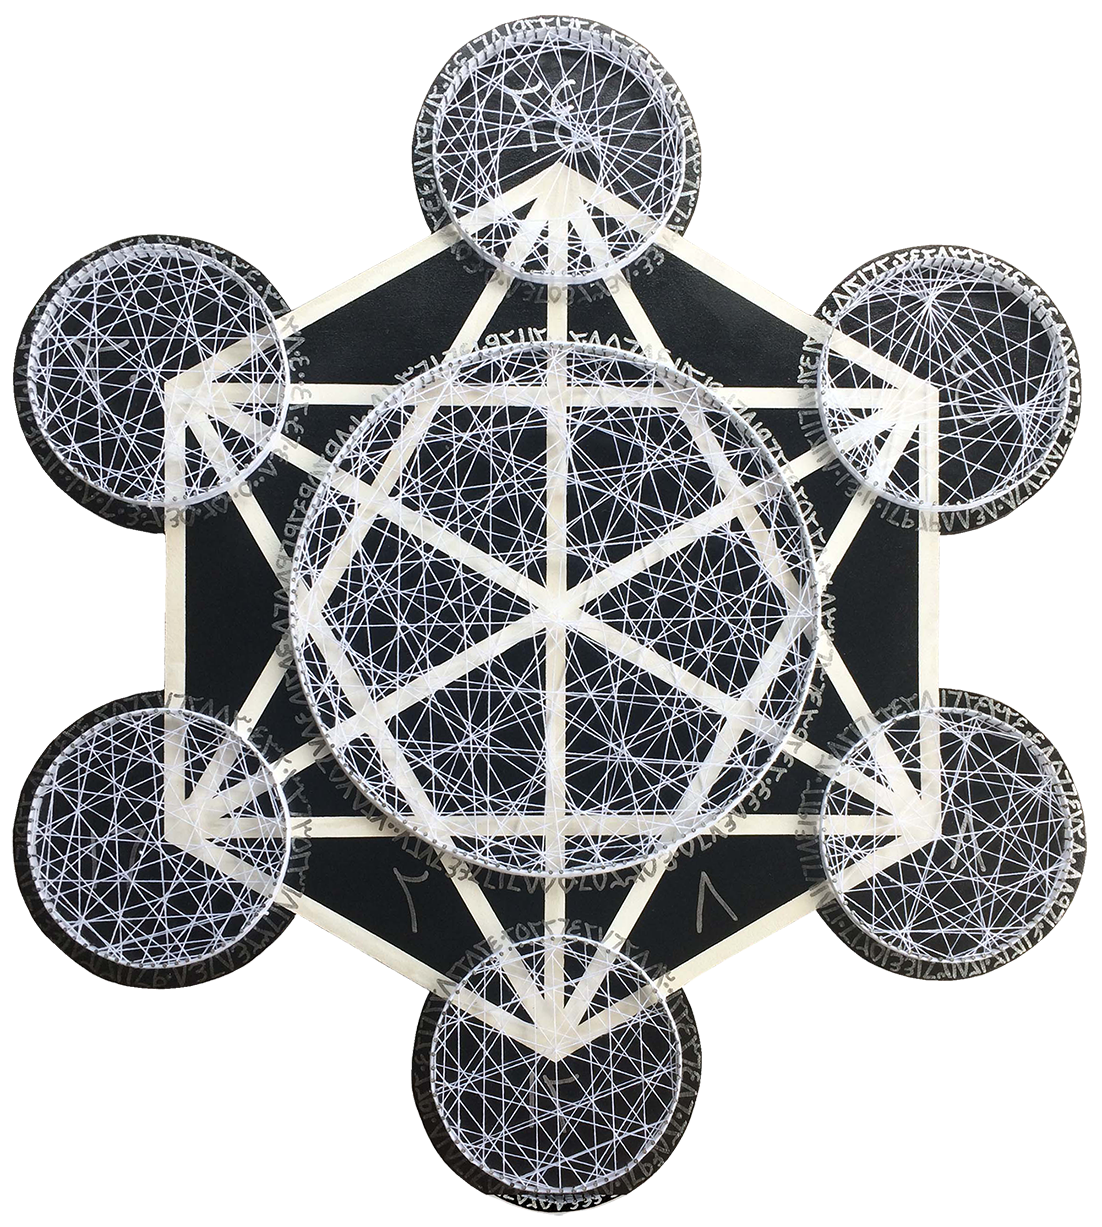 Multiplication Time Table of Number Four in Metatron Cube